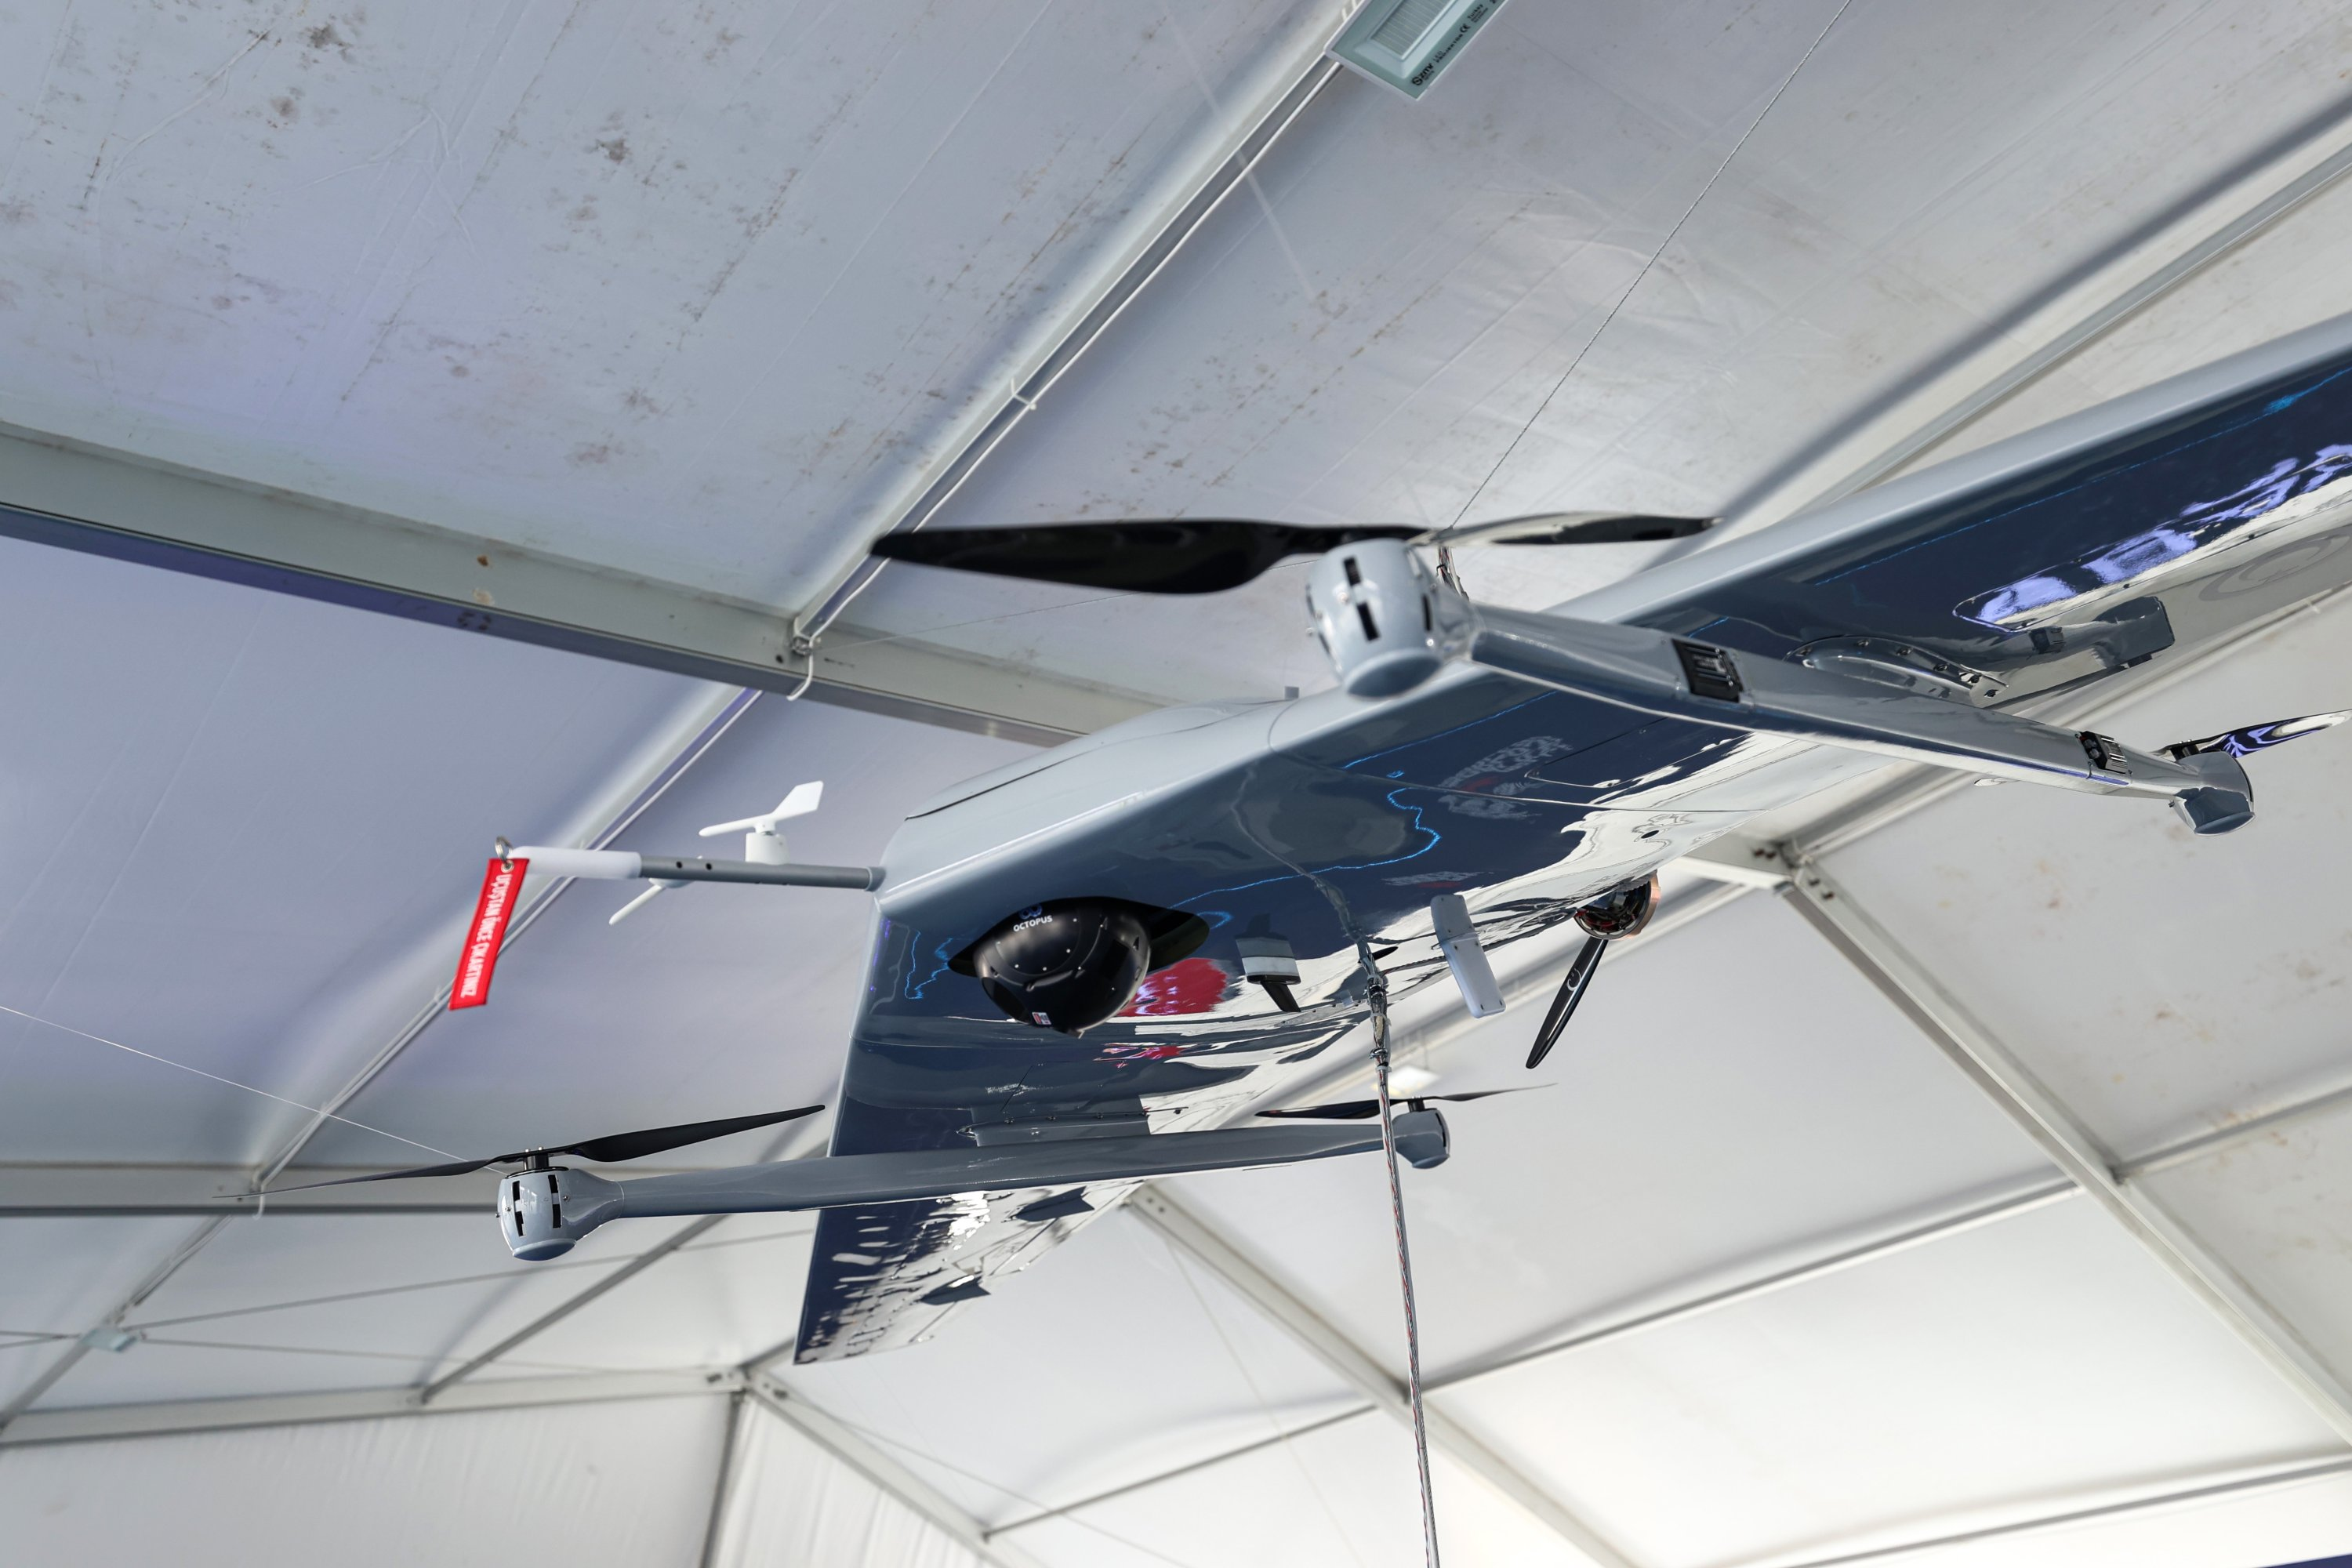 Baykar's vertical take-off and landing (VTOL) unmanned aerial vehicle (UAV) is on display at Turkey's largest technology and aviation event, Teknofest, in Istanbul, Turkey, Sept. 23, 2021. (AA Photo)